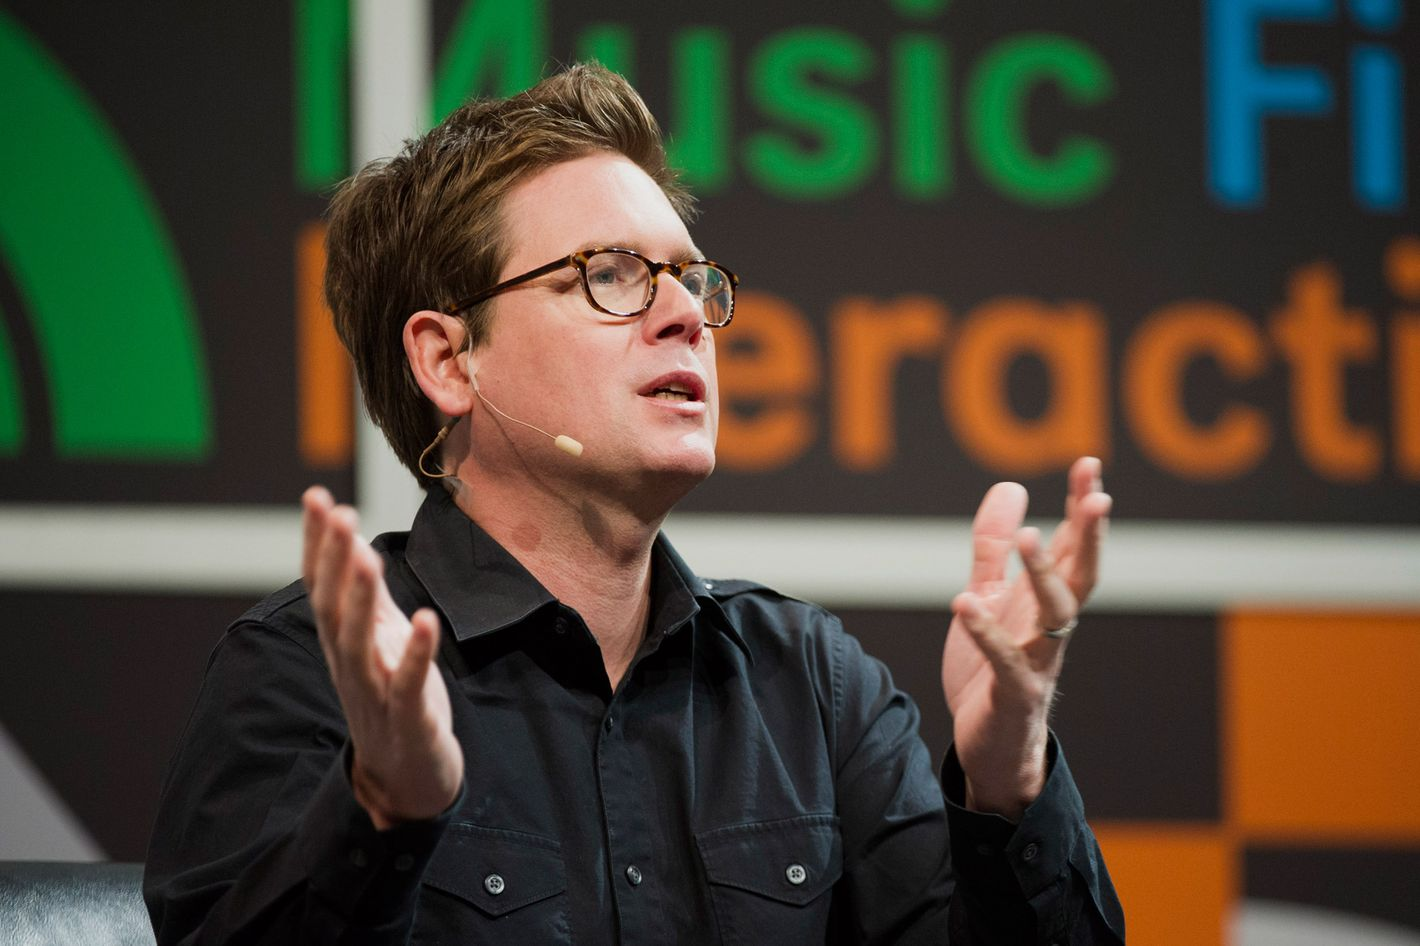 """Christopher Isaac """"Biz"""" Stone, chief executive officer of Jelly Industries Inc. and co-founder of Twitter Inc., speaks during a featured session at the South By Southwest (SXSW) Interactive Festival in Austin, Texas, U.S., on Tuesday, March 11, 2014."""